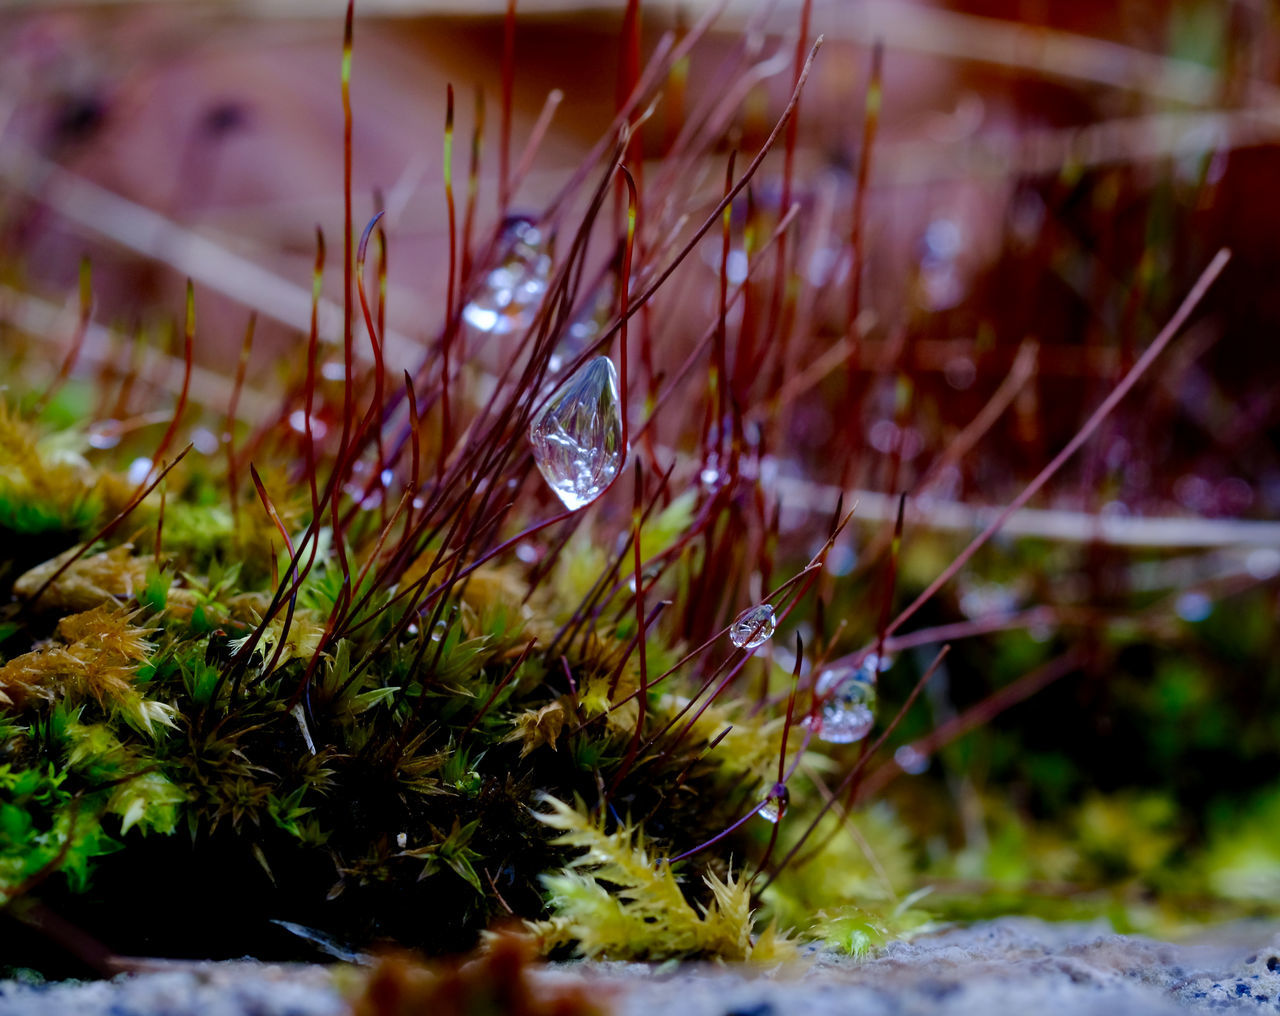 Beauty In Nature Close-up Icicles Macro Nature Macro Photography Moss Mossporn Nature Outdoors